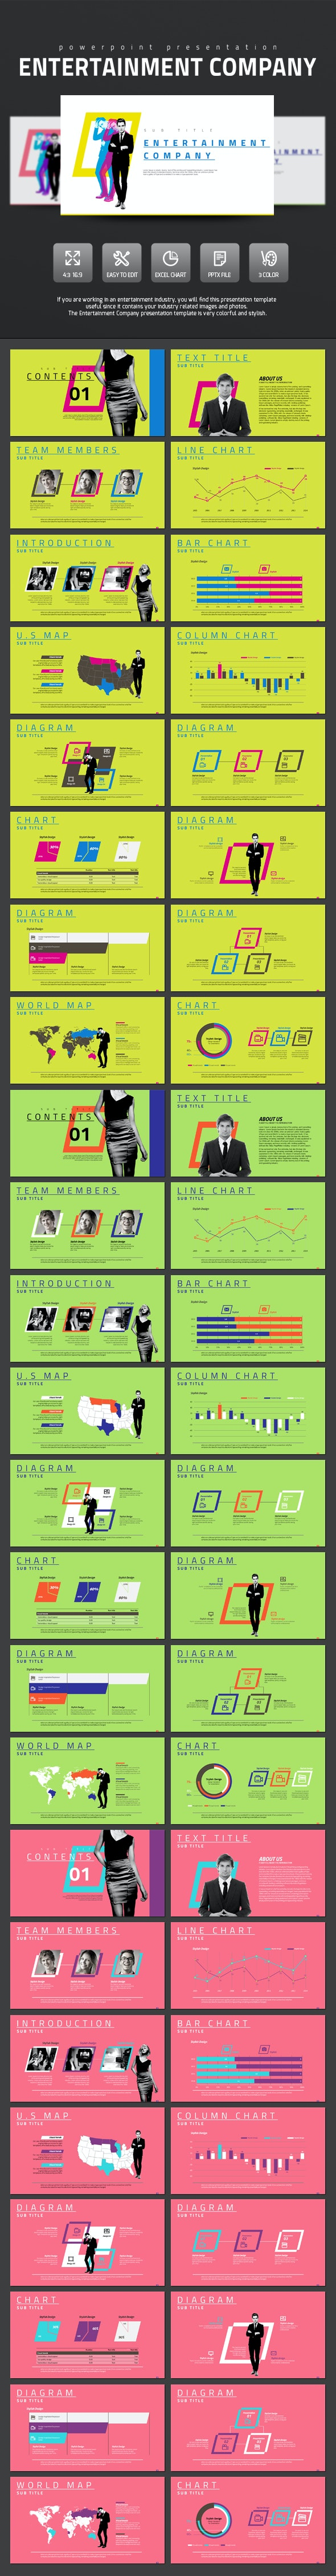 Entertainment Company - PowerPoint Templates Presentation Templates